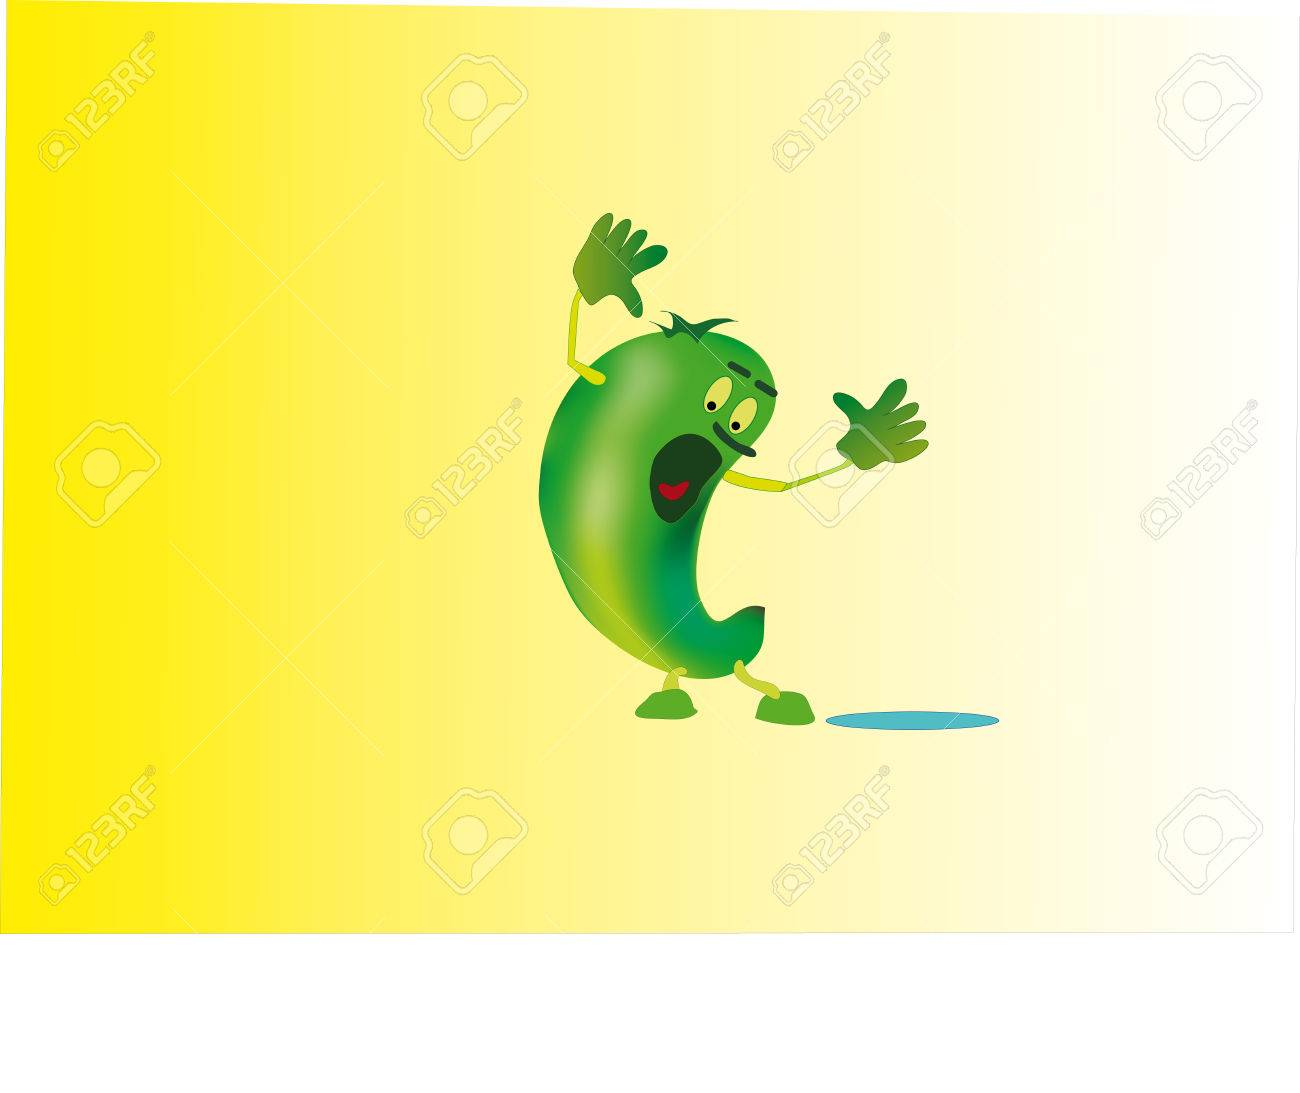 The small green little man very similar to a cucumber, is indignant. Stock Vector - 4117918